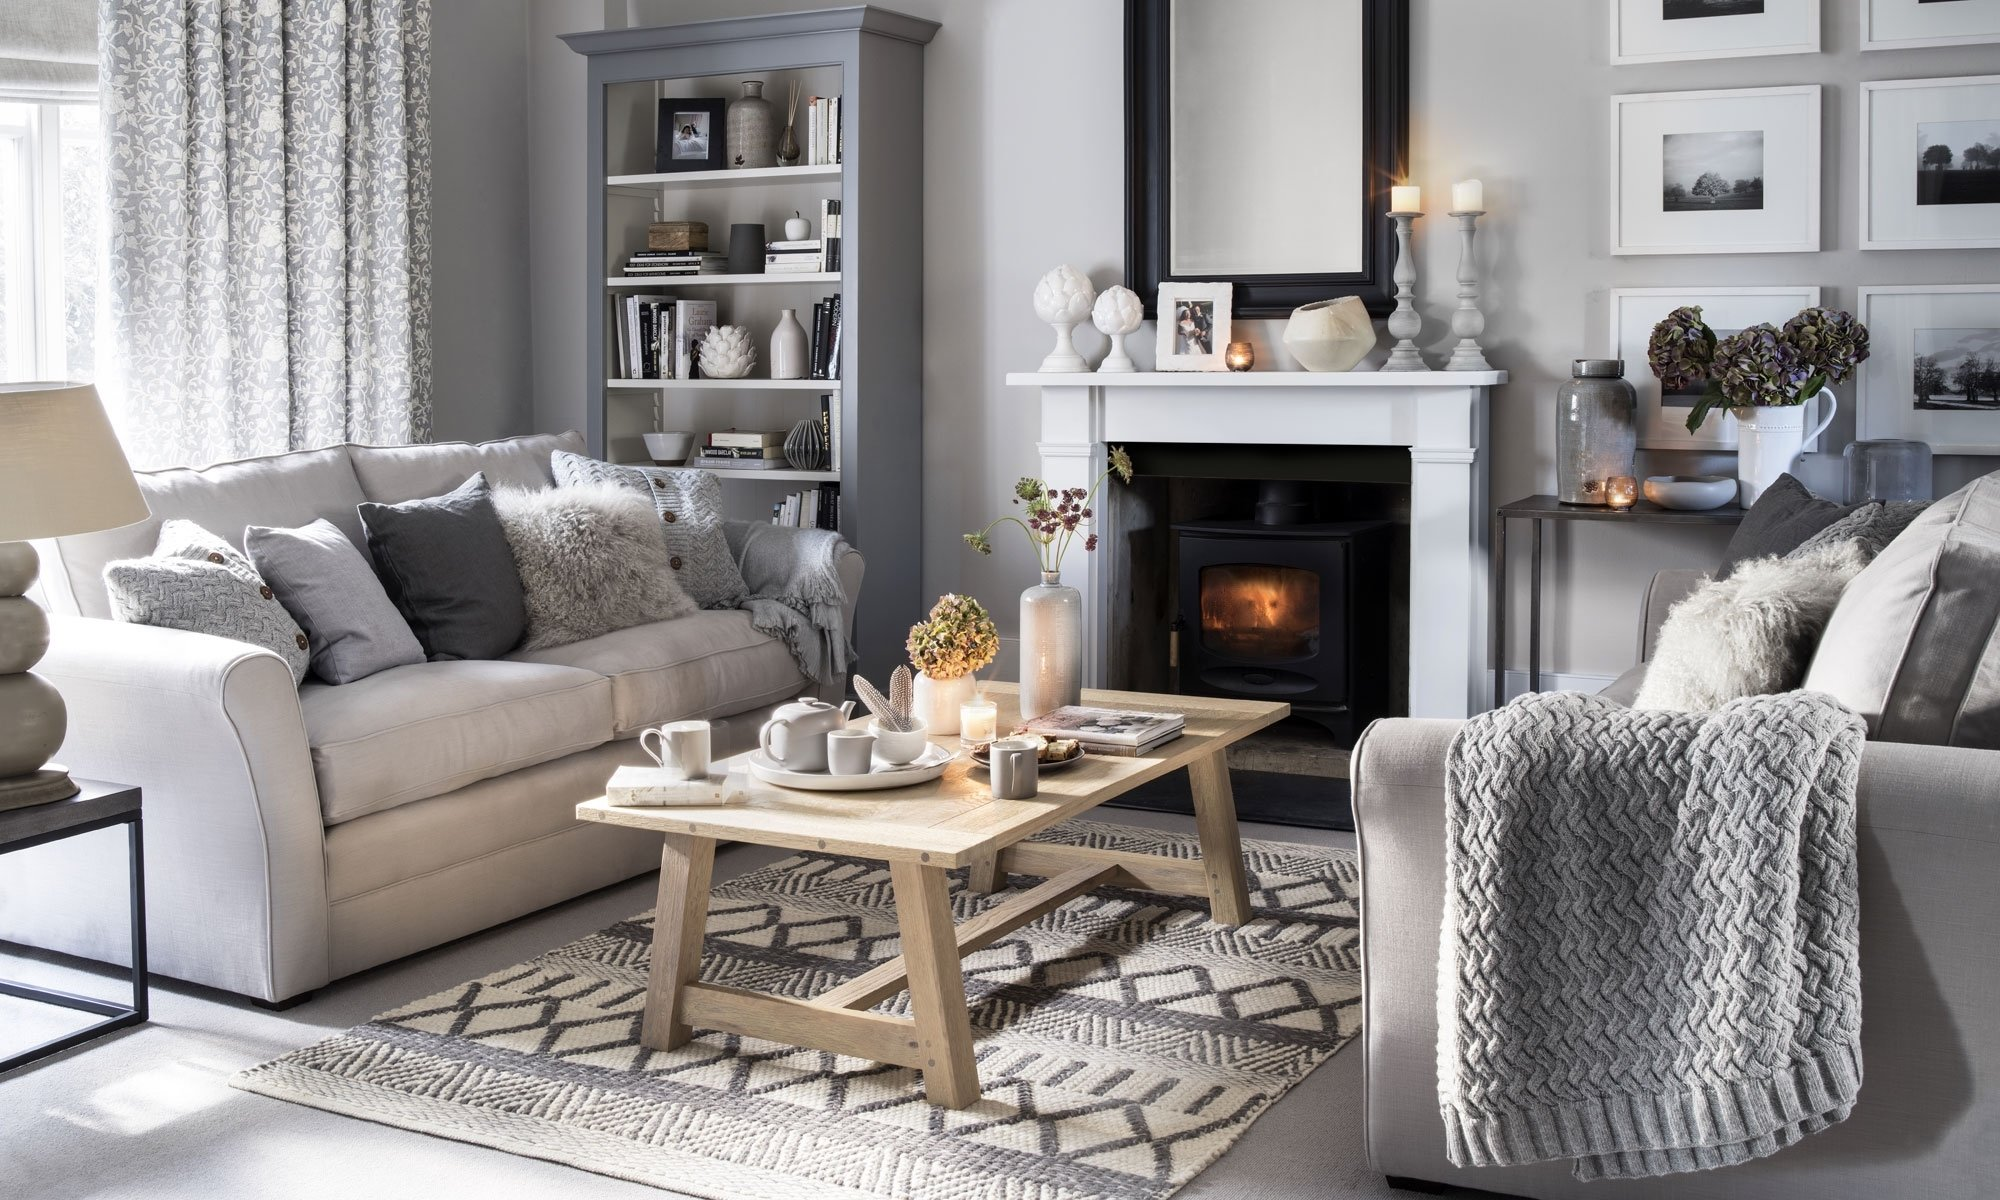 10 Trendy Decorating Ideas For Living Room living room ideas designs and inspiration ideal home 12 2021